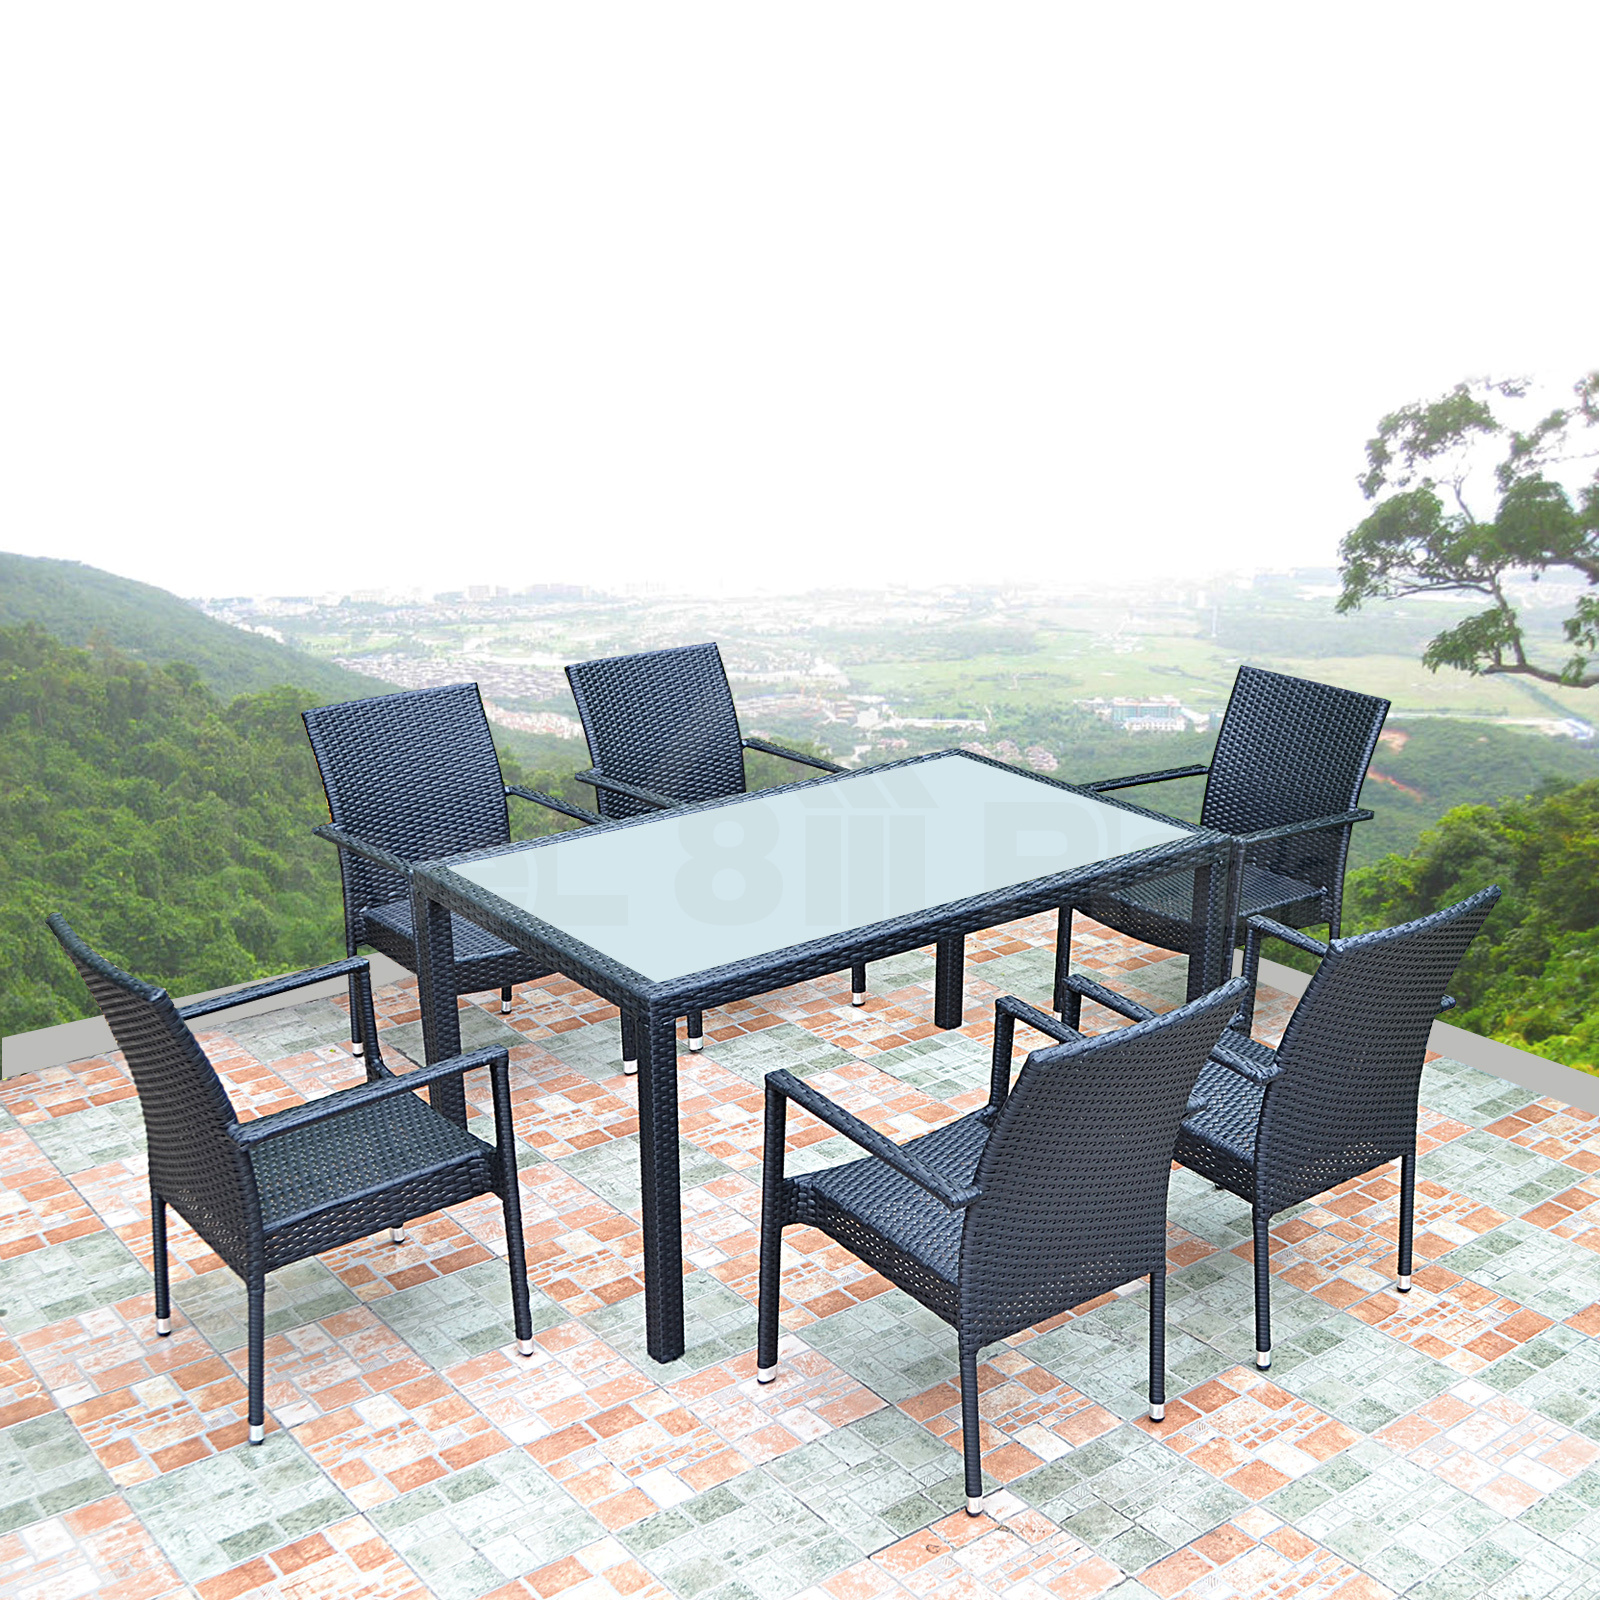 Outdoor wicker dining set glass table stackable chairs for Outdoor dining table glass top